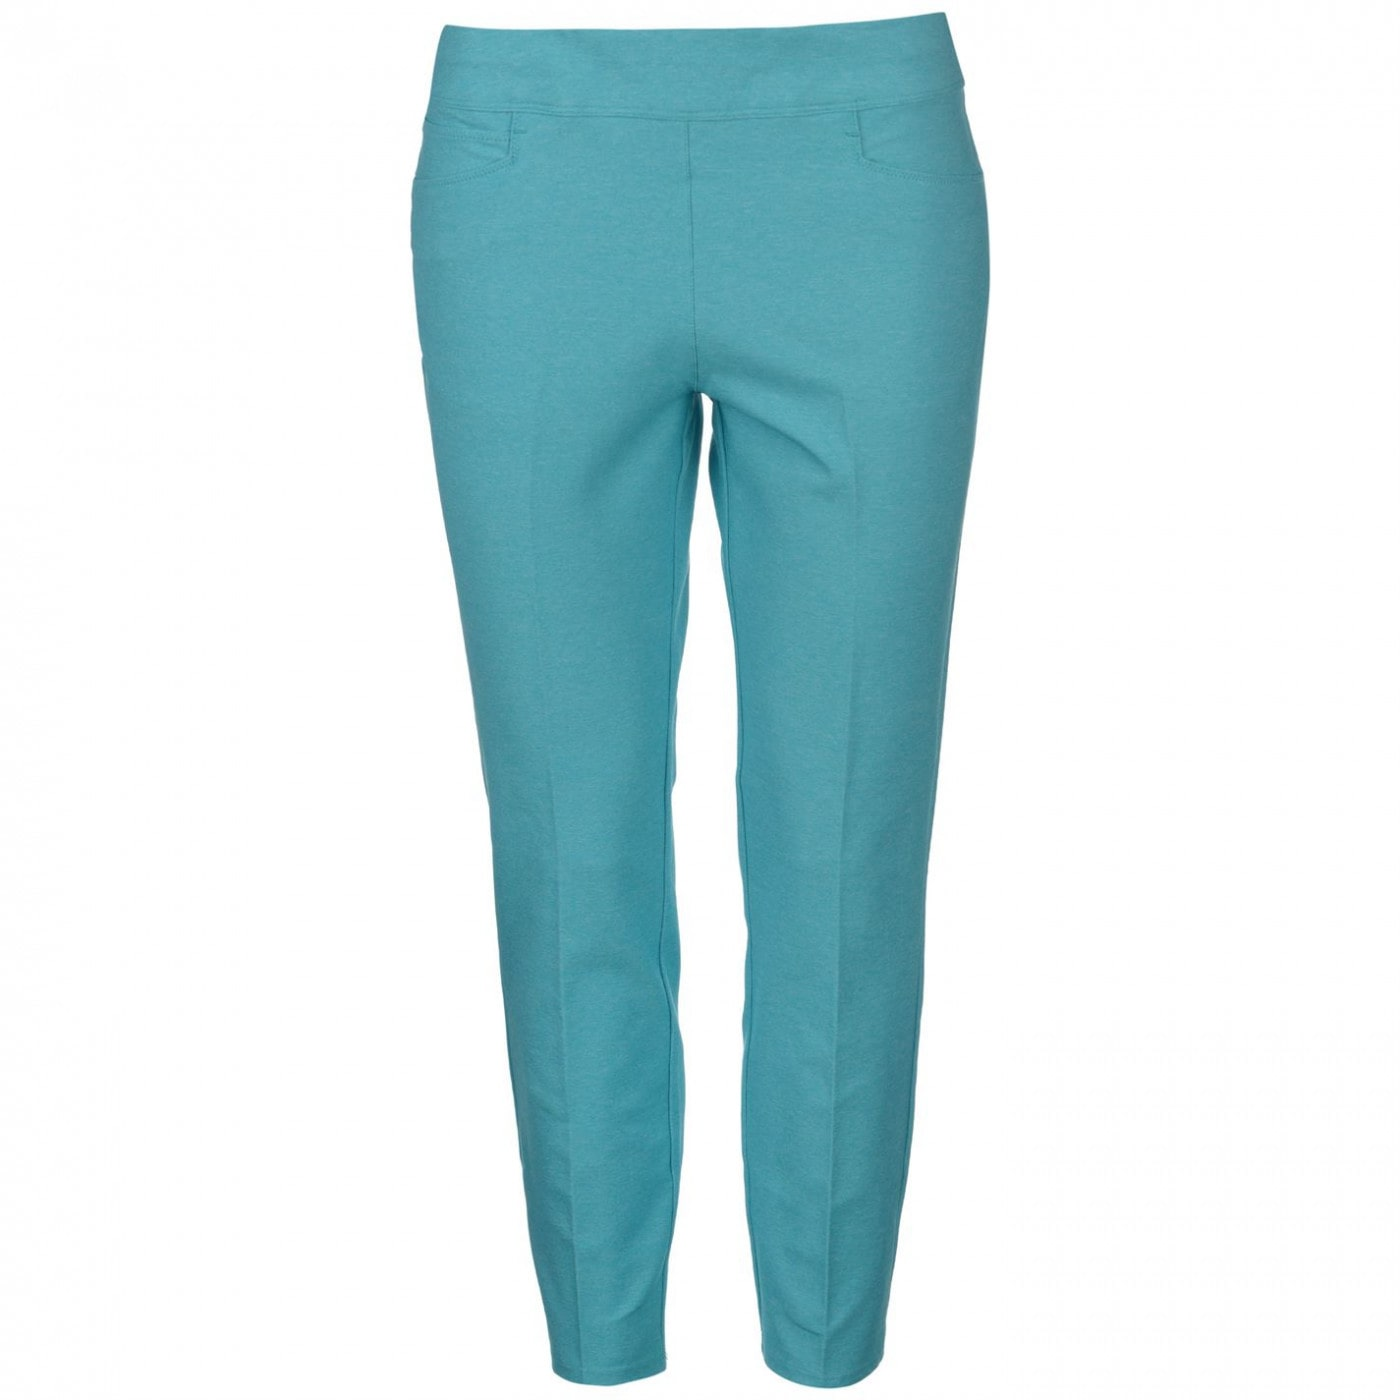 Intacto Impulso Picotear  Adidas Cropped Pants Ladies